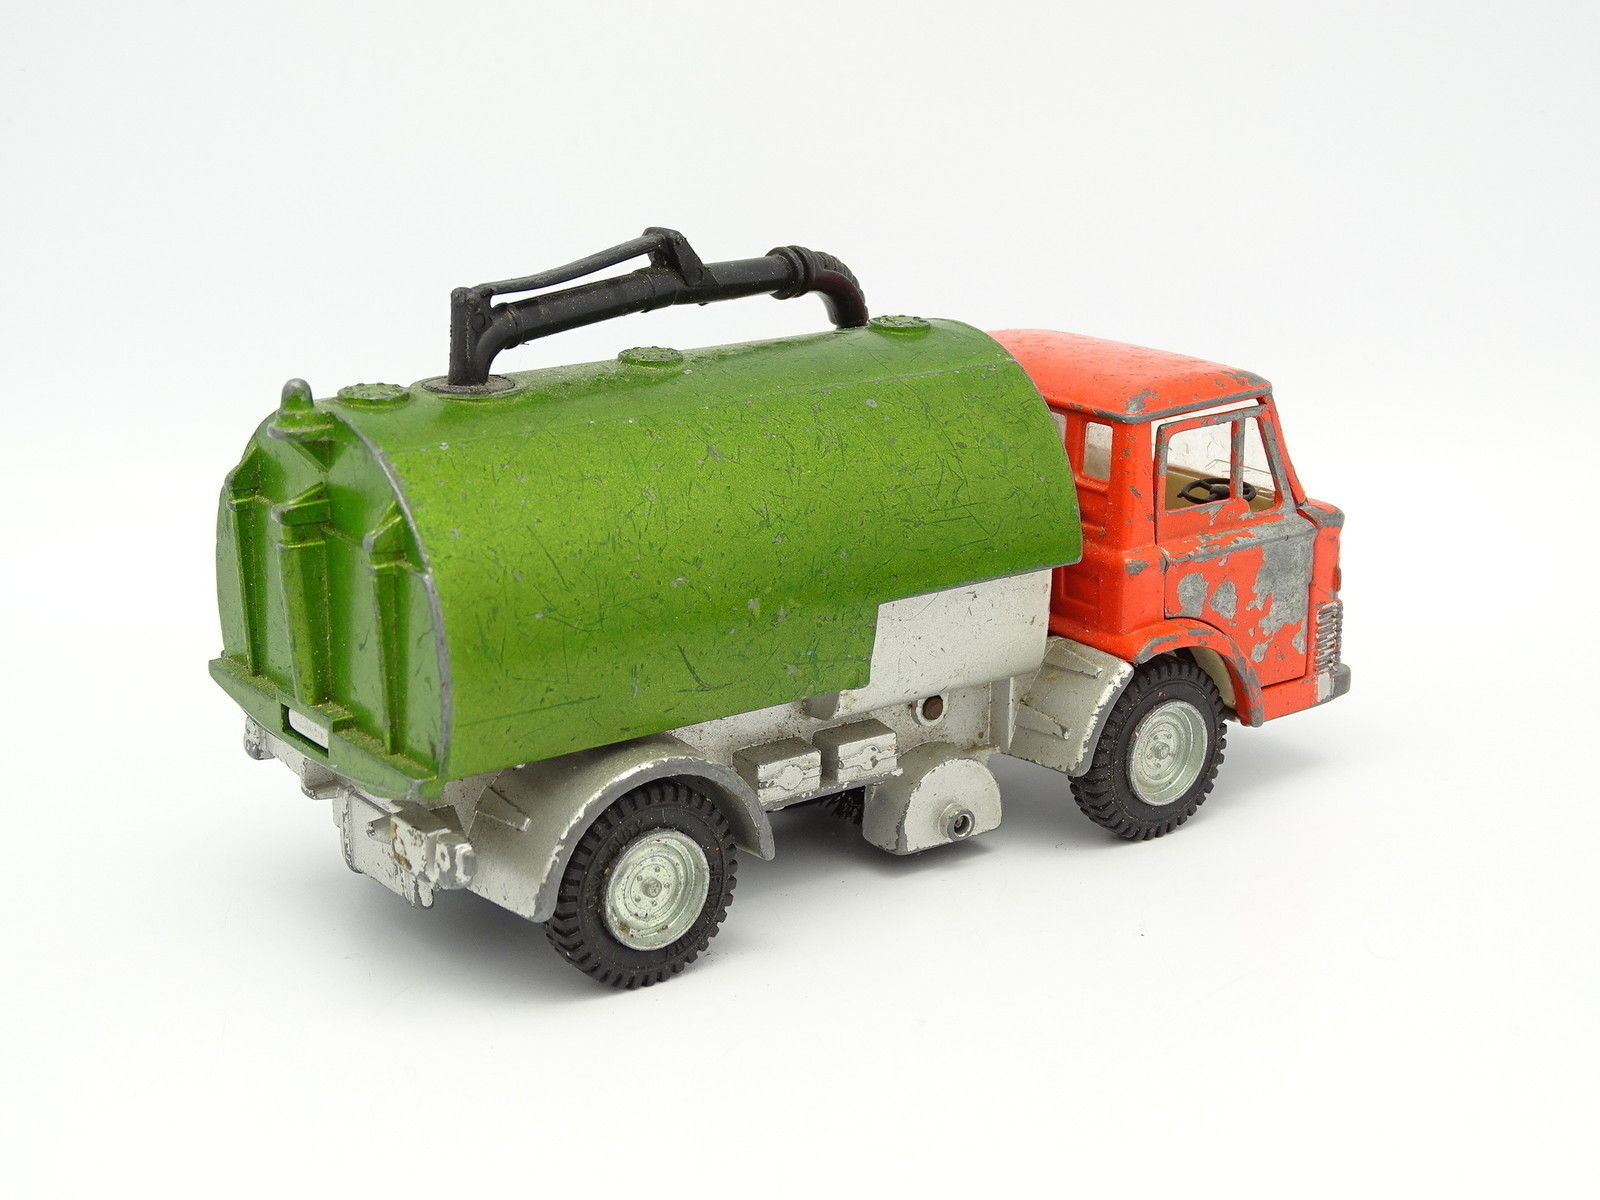 Dinky toys GB SB 1 43 43 43 - Johnston Road Sweeper Sweeper 9f08d2